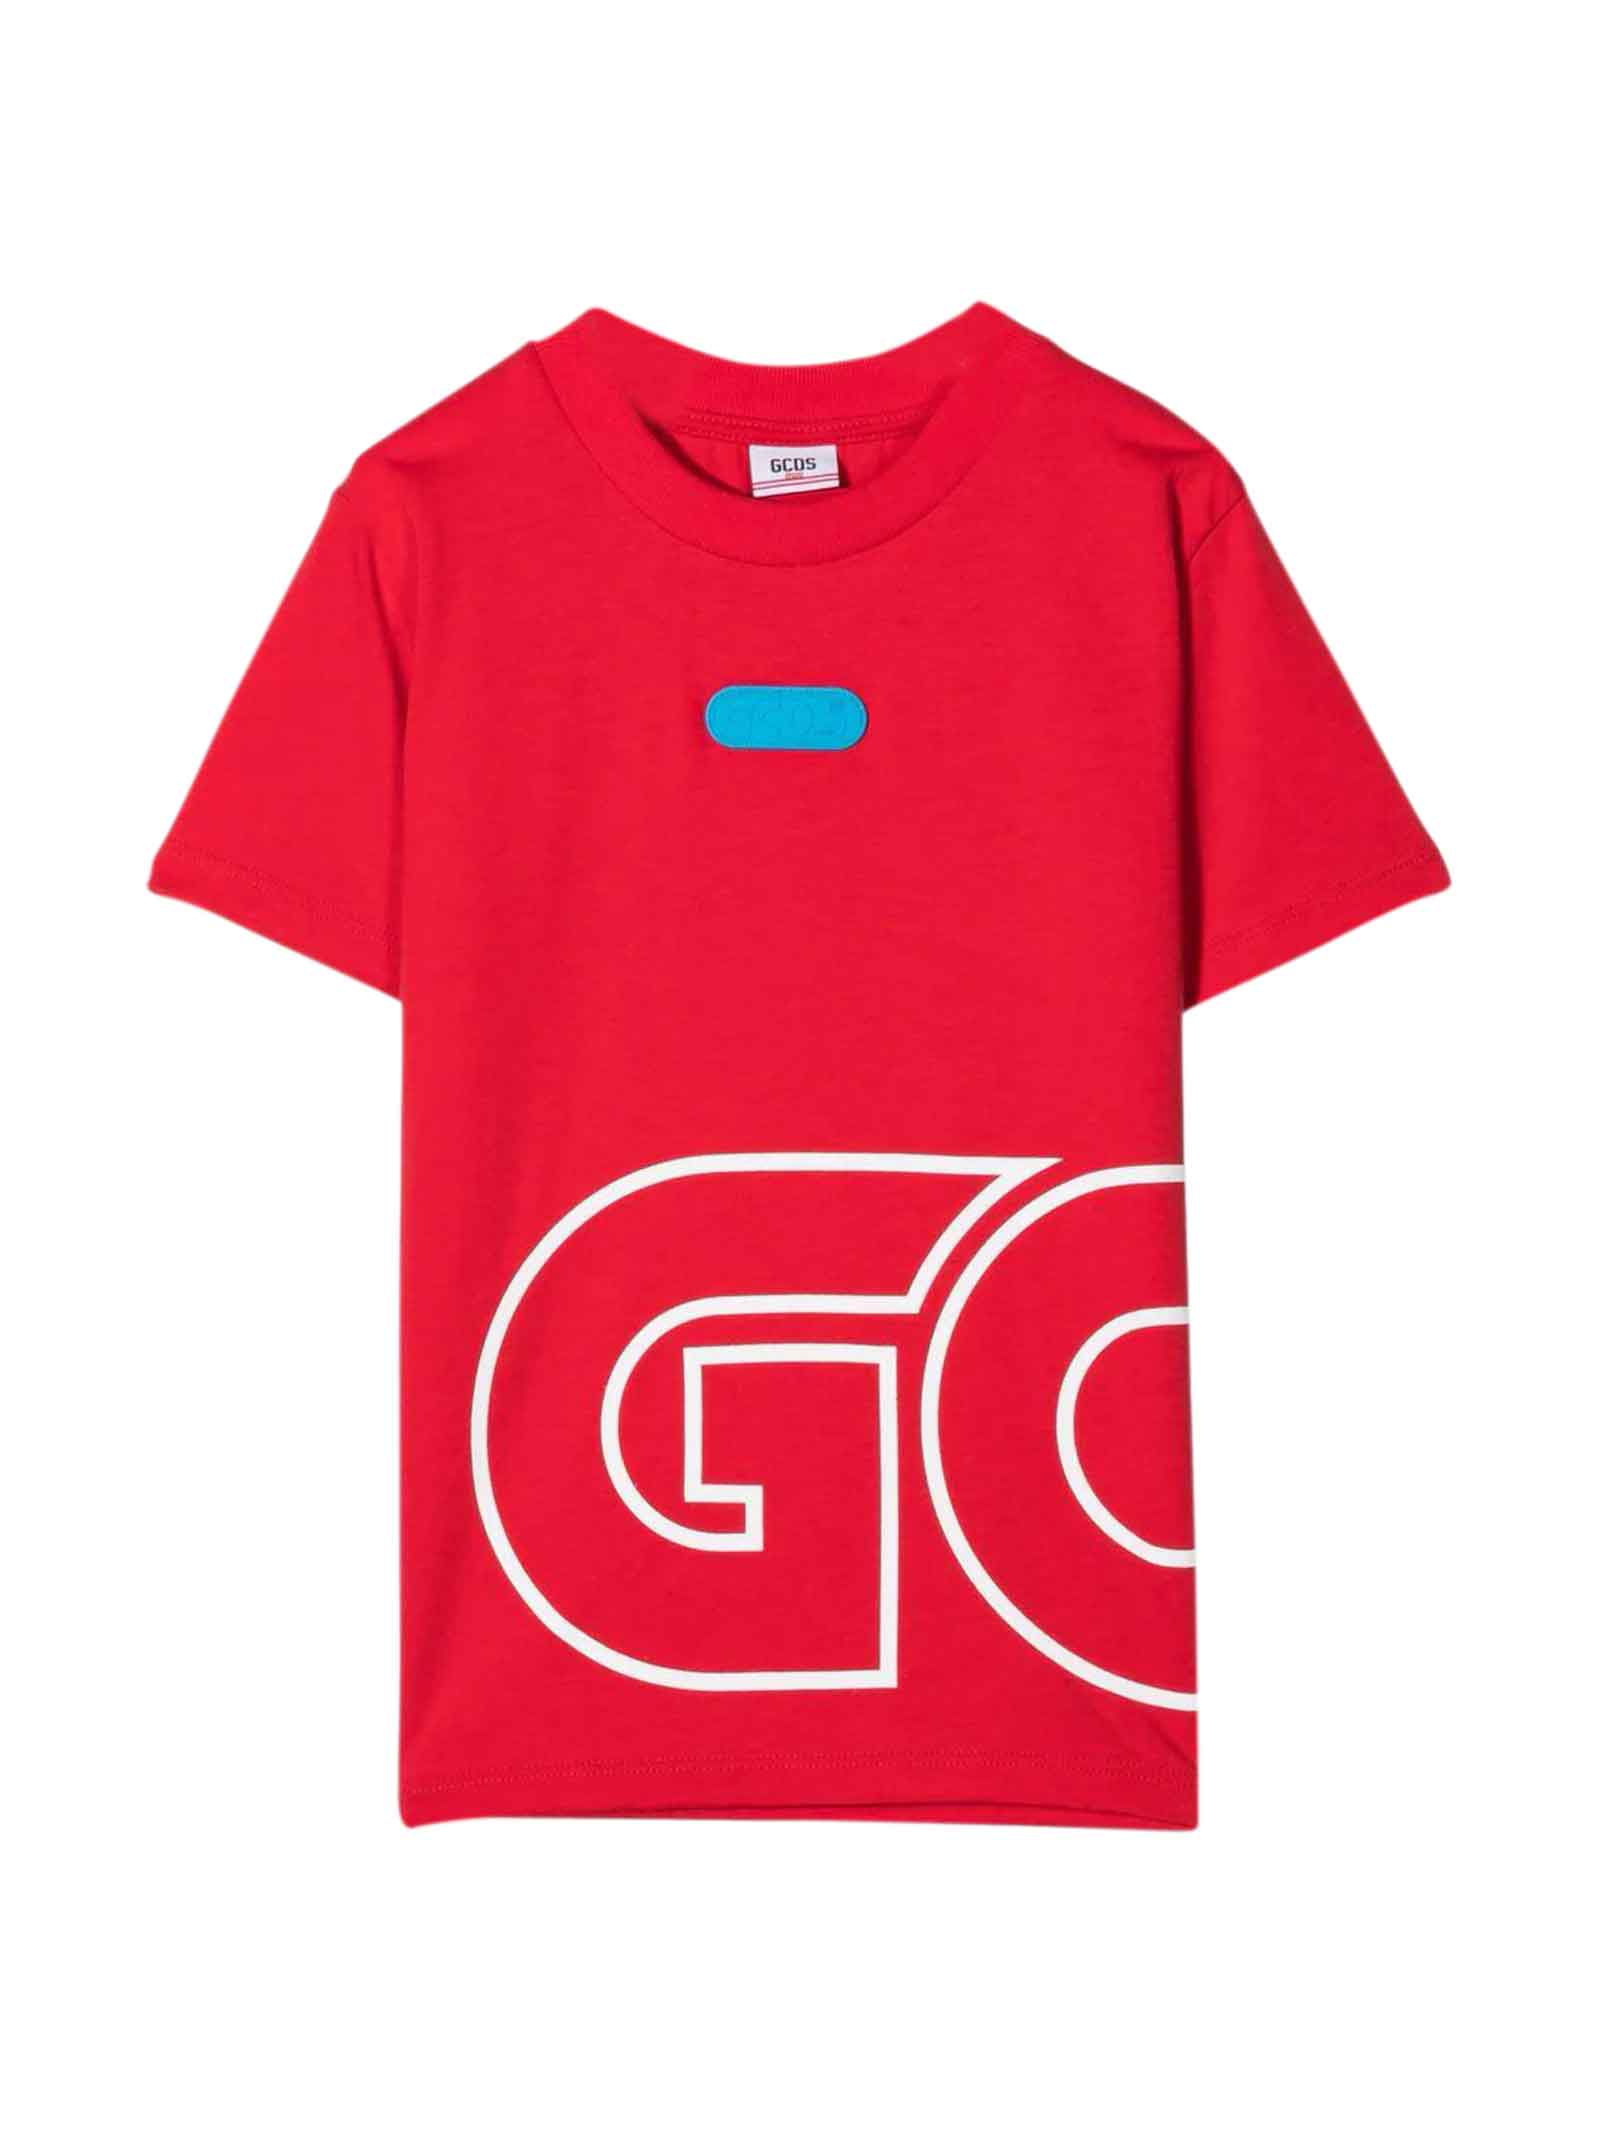 Red Teen T-shirt With White Print